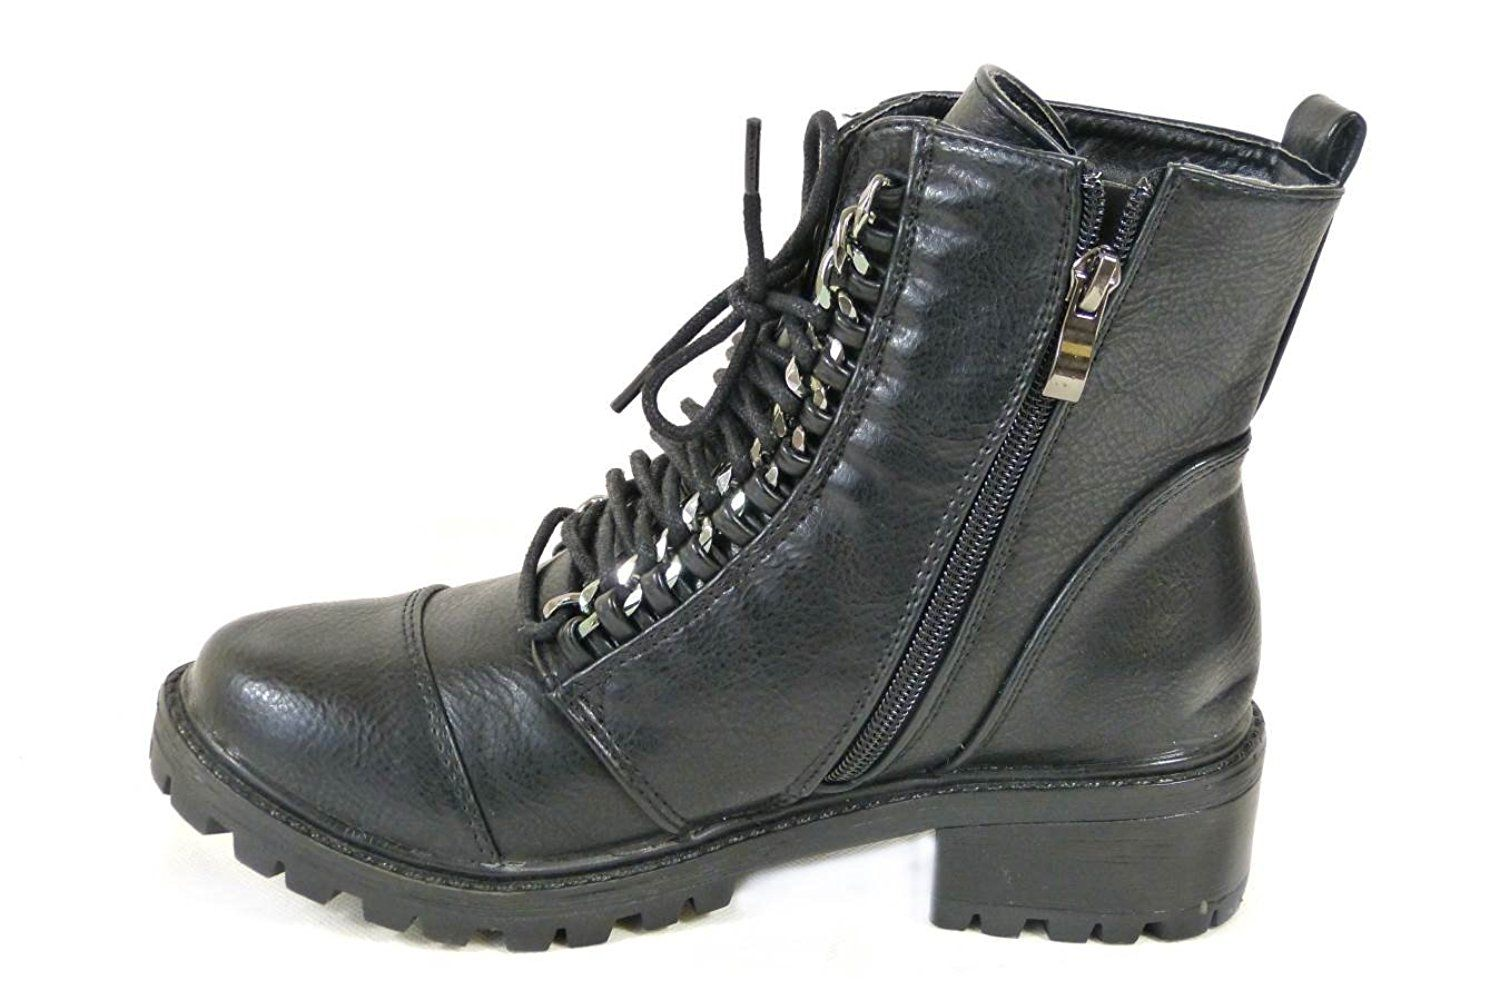 053b3a42f78a LADIES WOMENS PUNK GOTH EMO BIKER BLACK ANKLE LACE UP CHAIN EYELET ZIP UP BOOT  SHOES